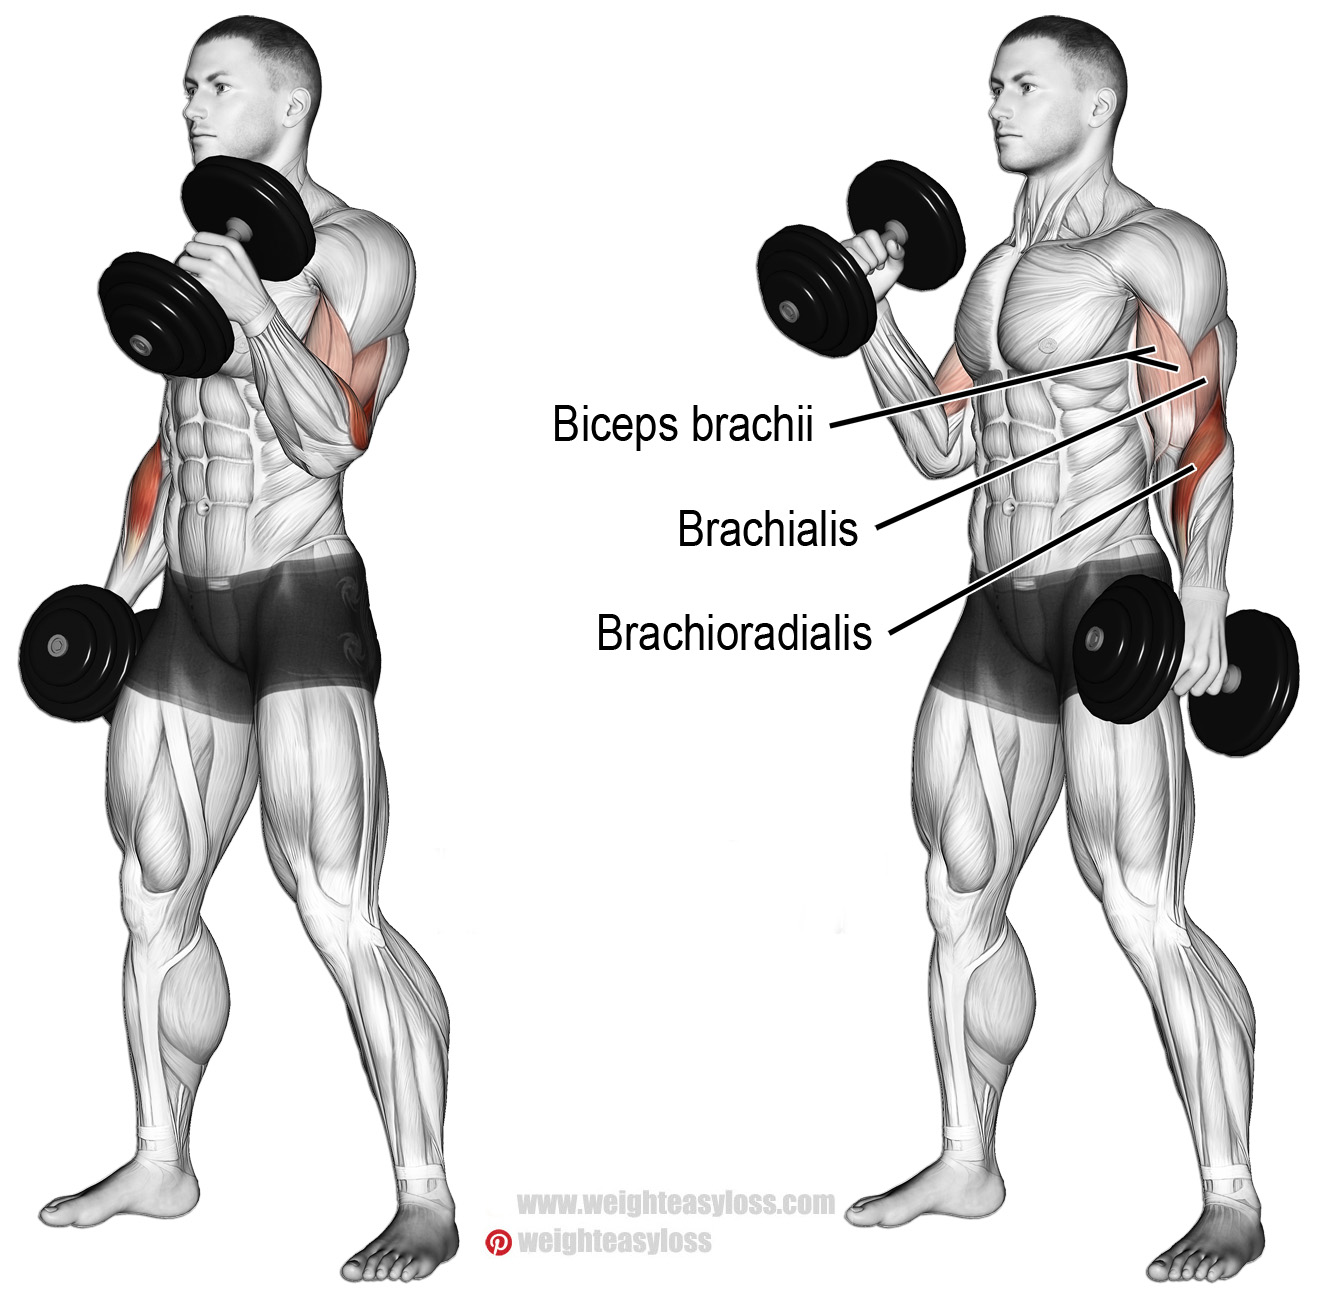 Exercise the hammer on the biceps